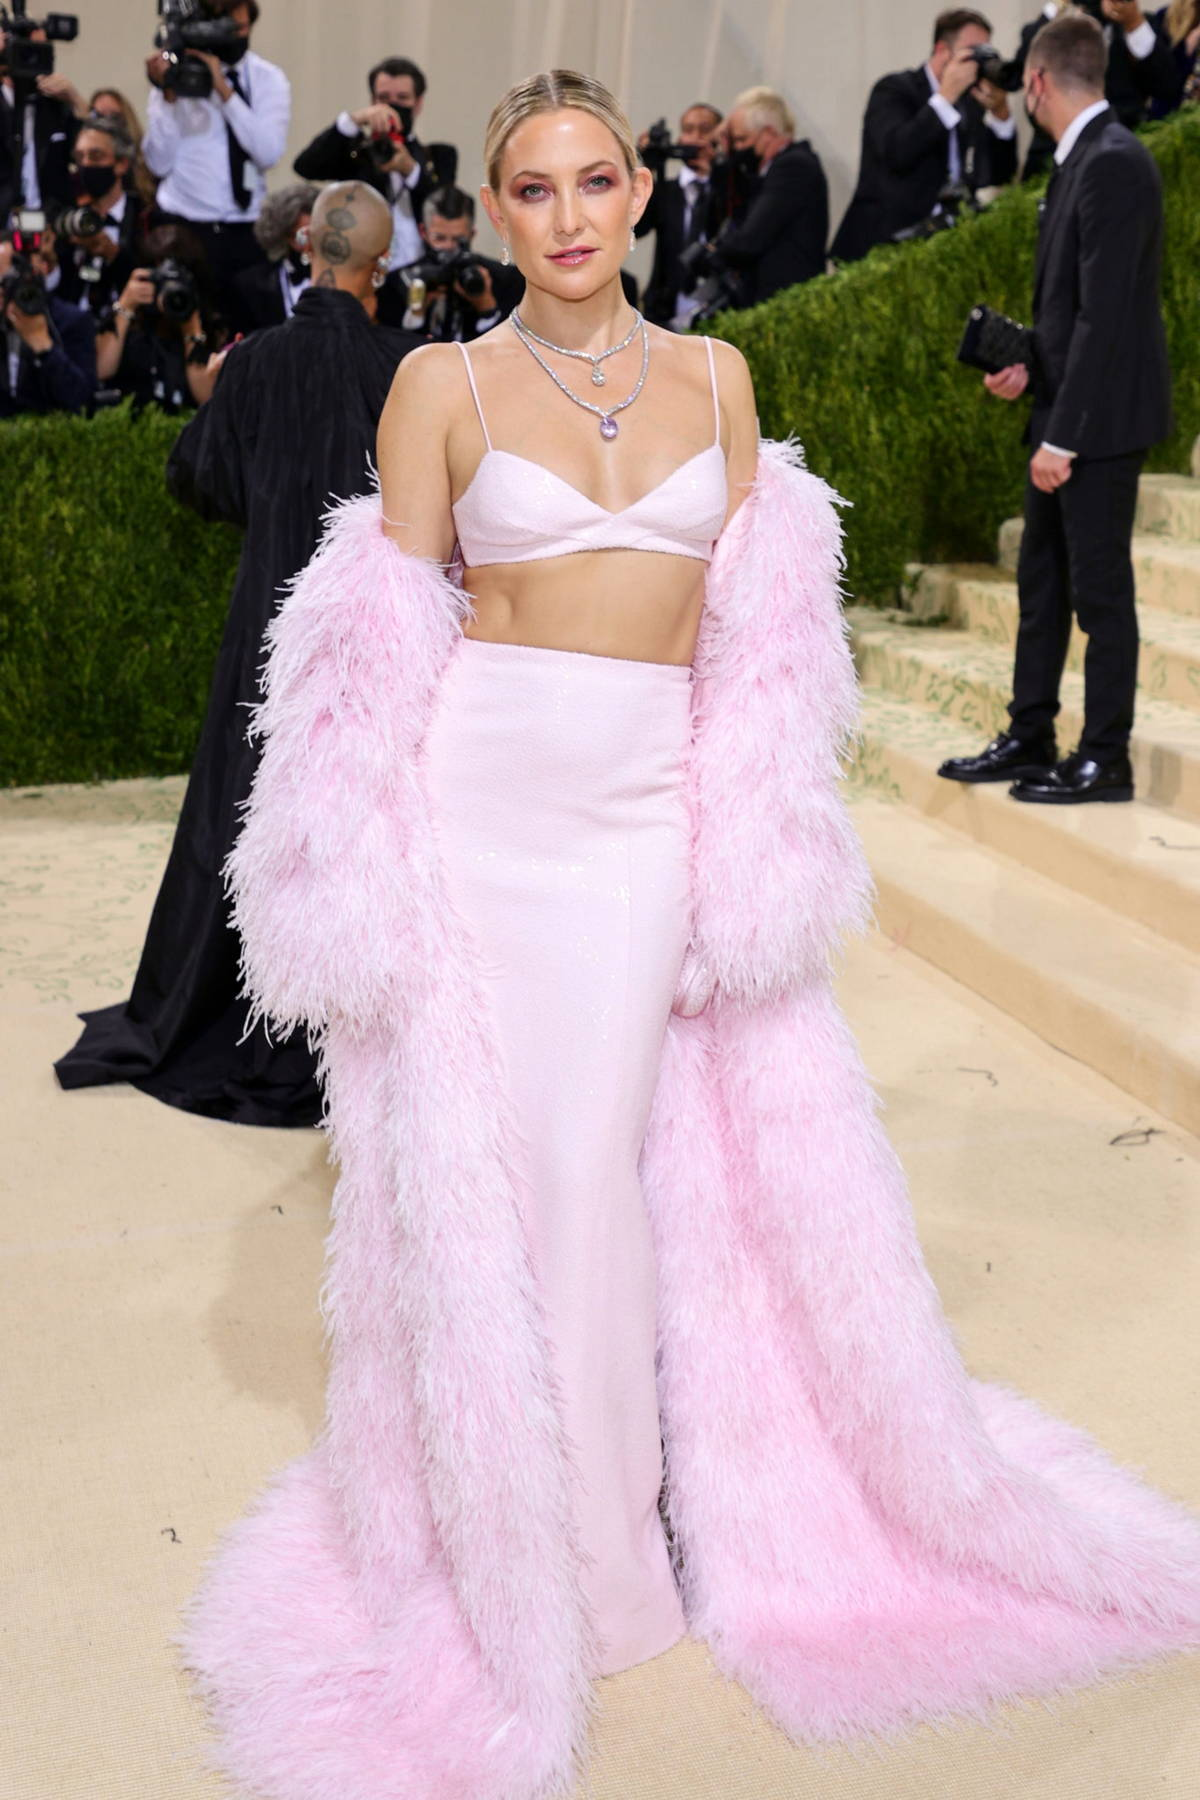 Kate Hudson attends The Met Gala Celebrating In America: A Lexicon Of Fashion at Metropolitan Museum of Art in New York City